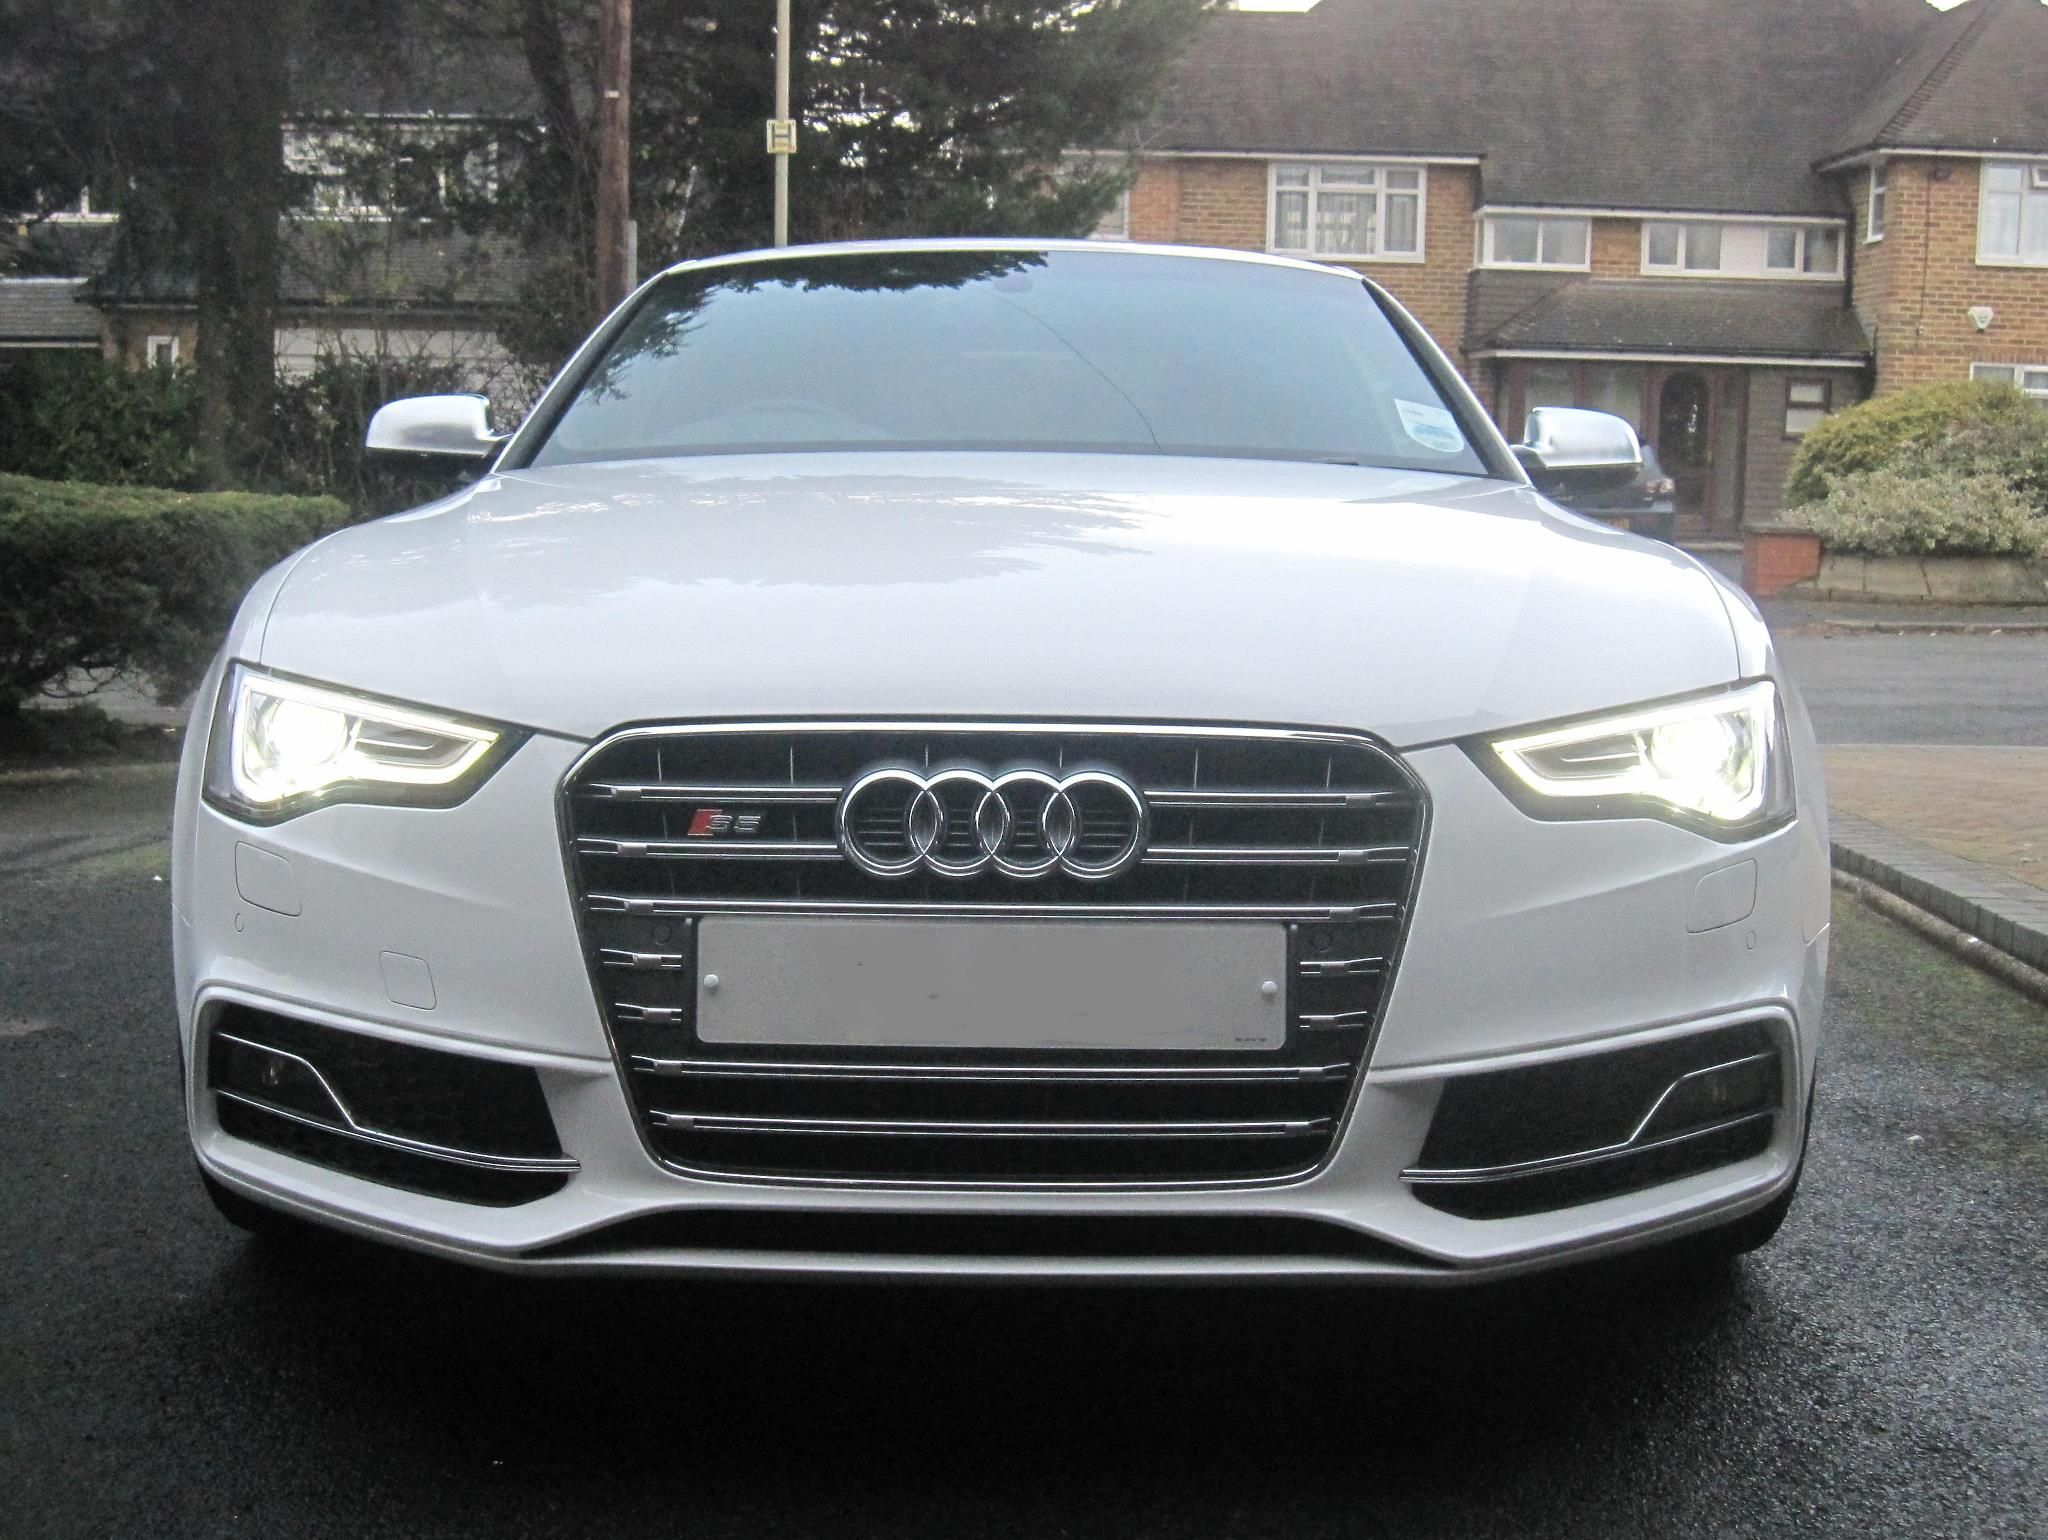 2012 audi s5 new LEDs!!! Audi a4, Audi, High